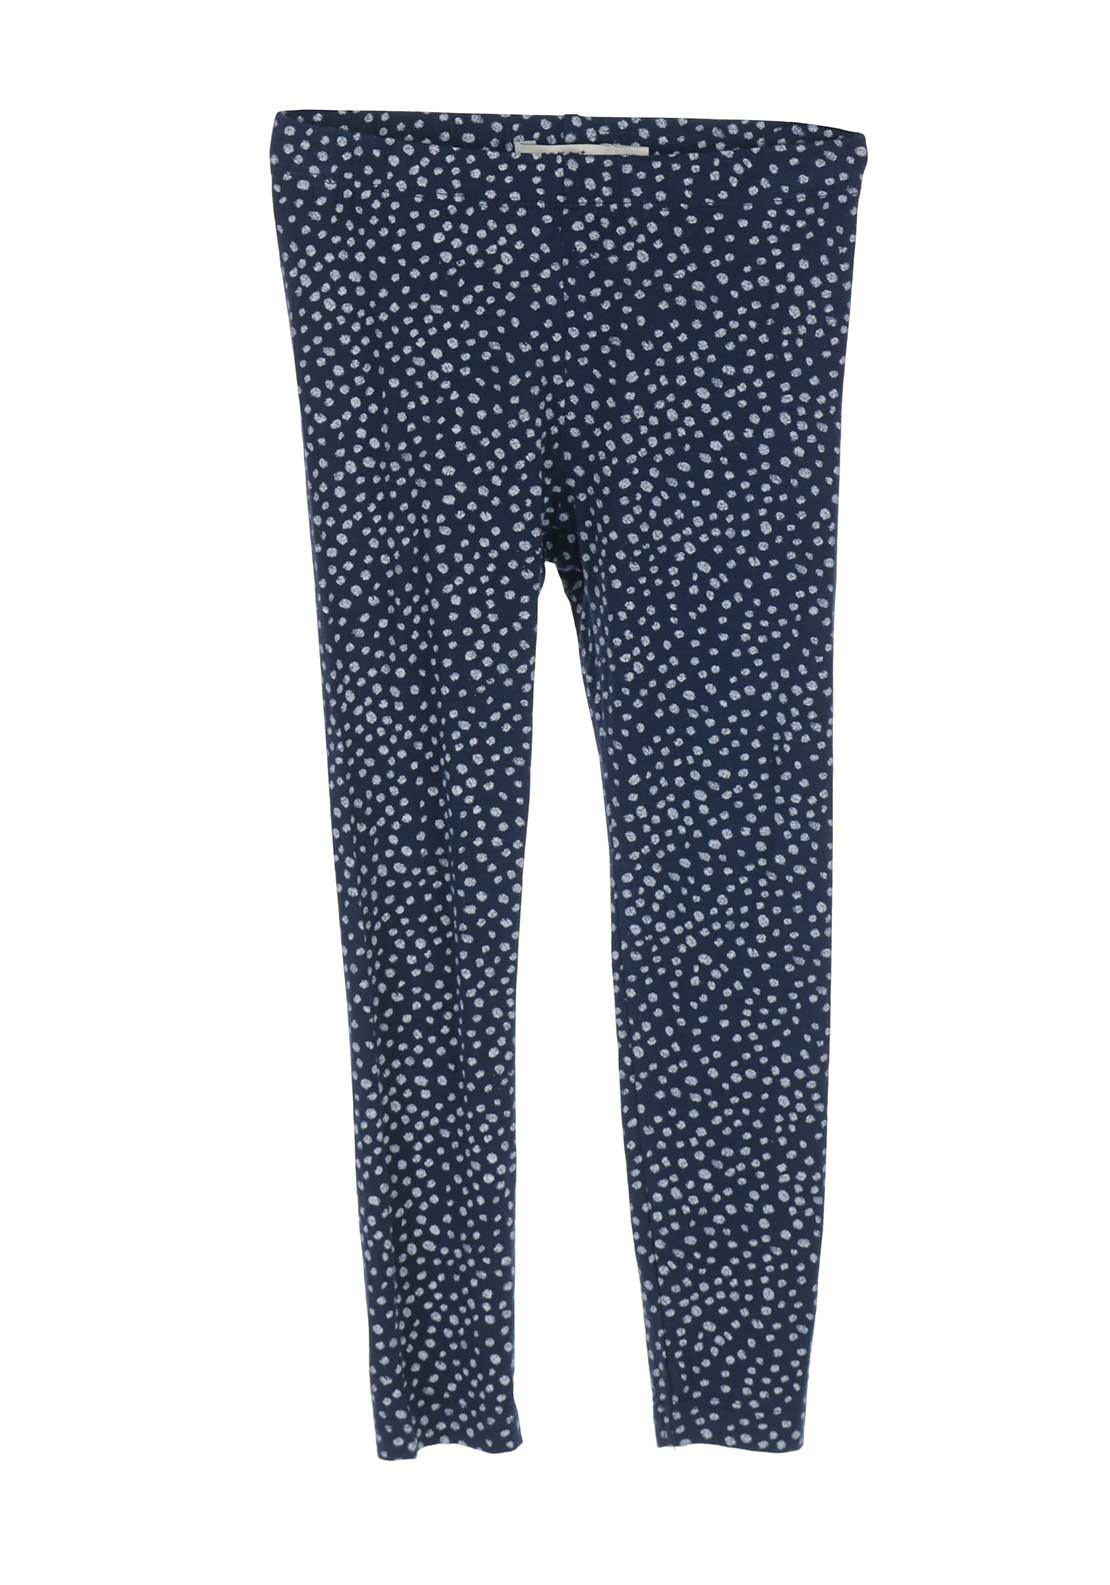 Name It Girls Kia Polka Dot Leggings, Navy